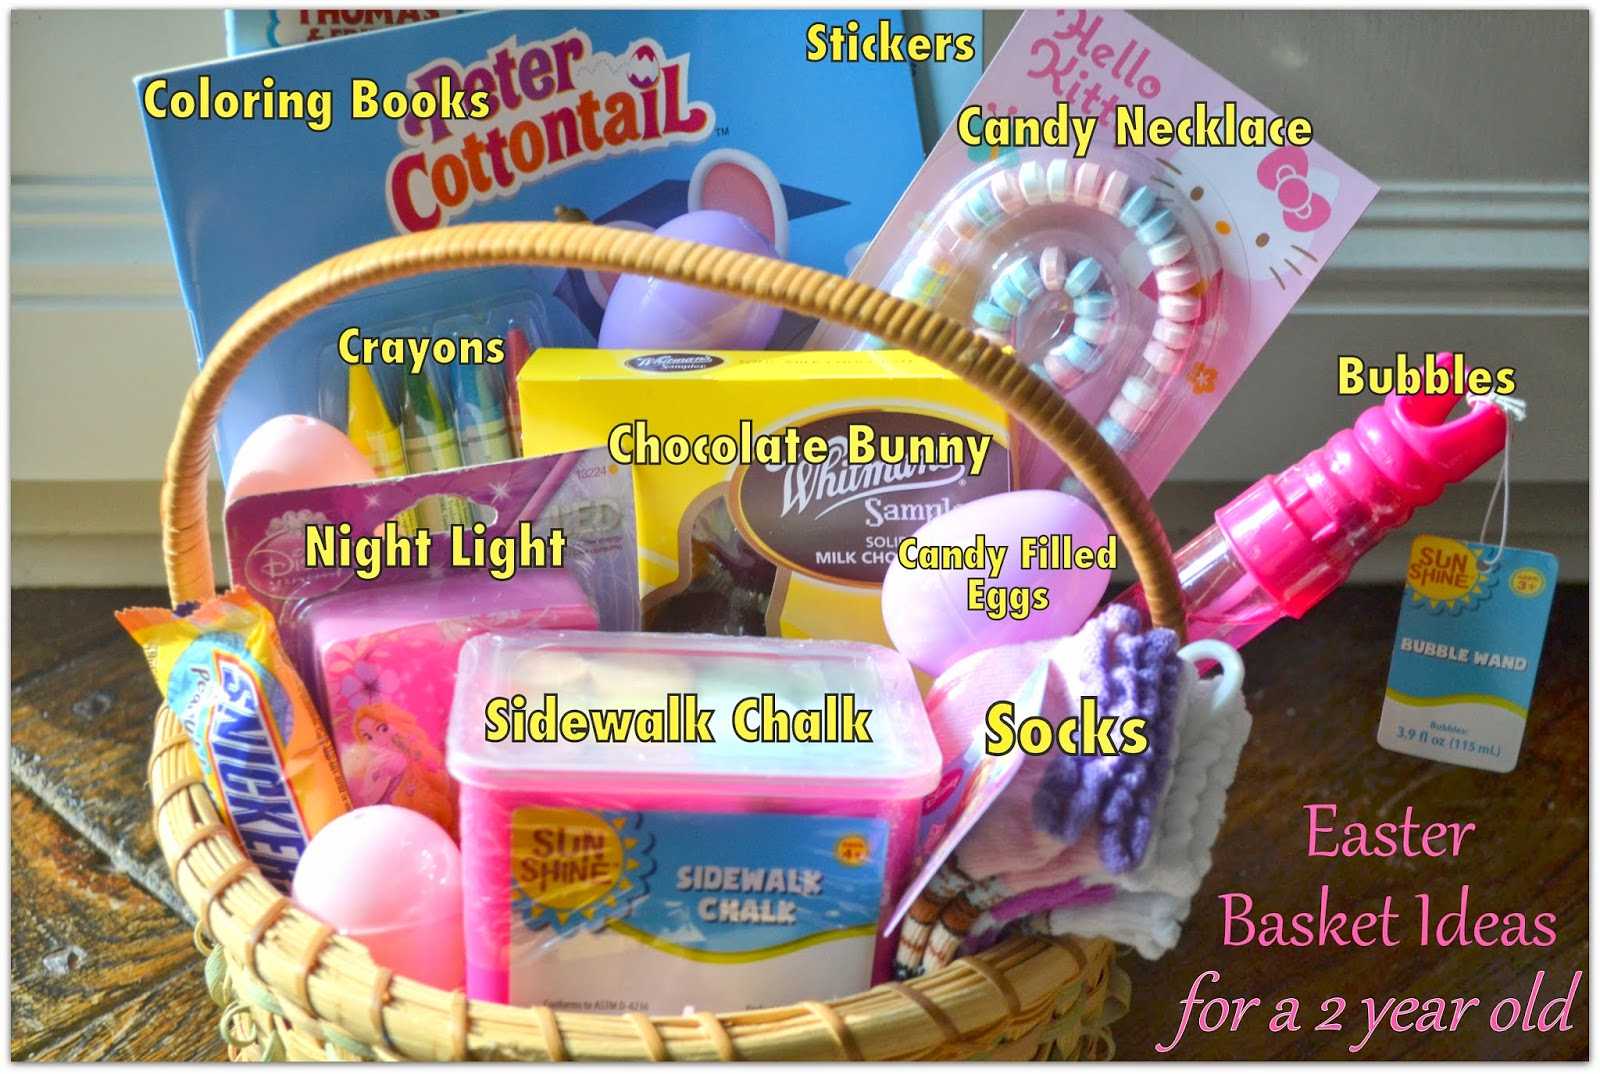 Easter basket ideas for a two year old logic laughter easter basket ideas for a two year old saturday april 19 2014 negle Images